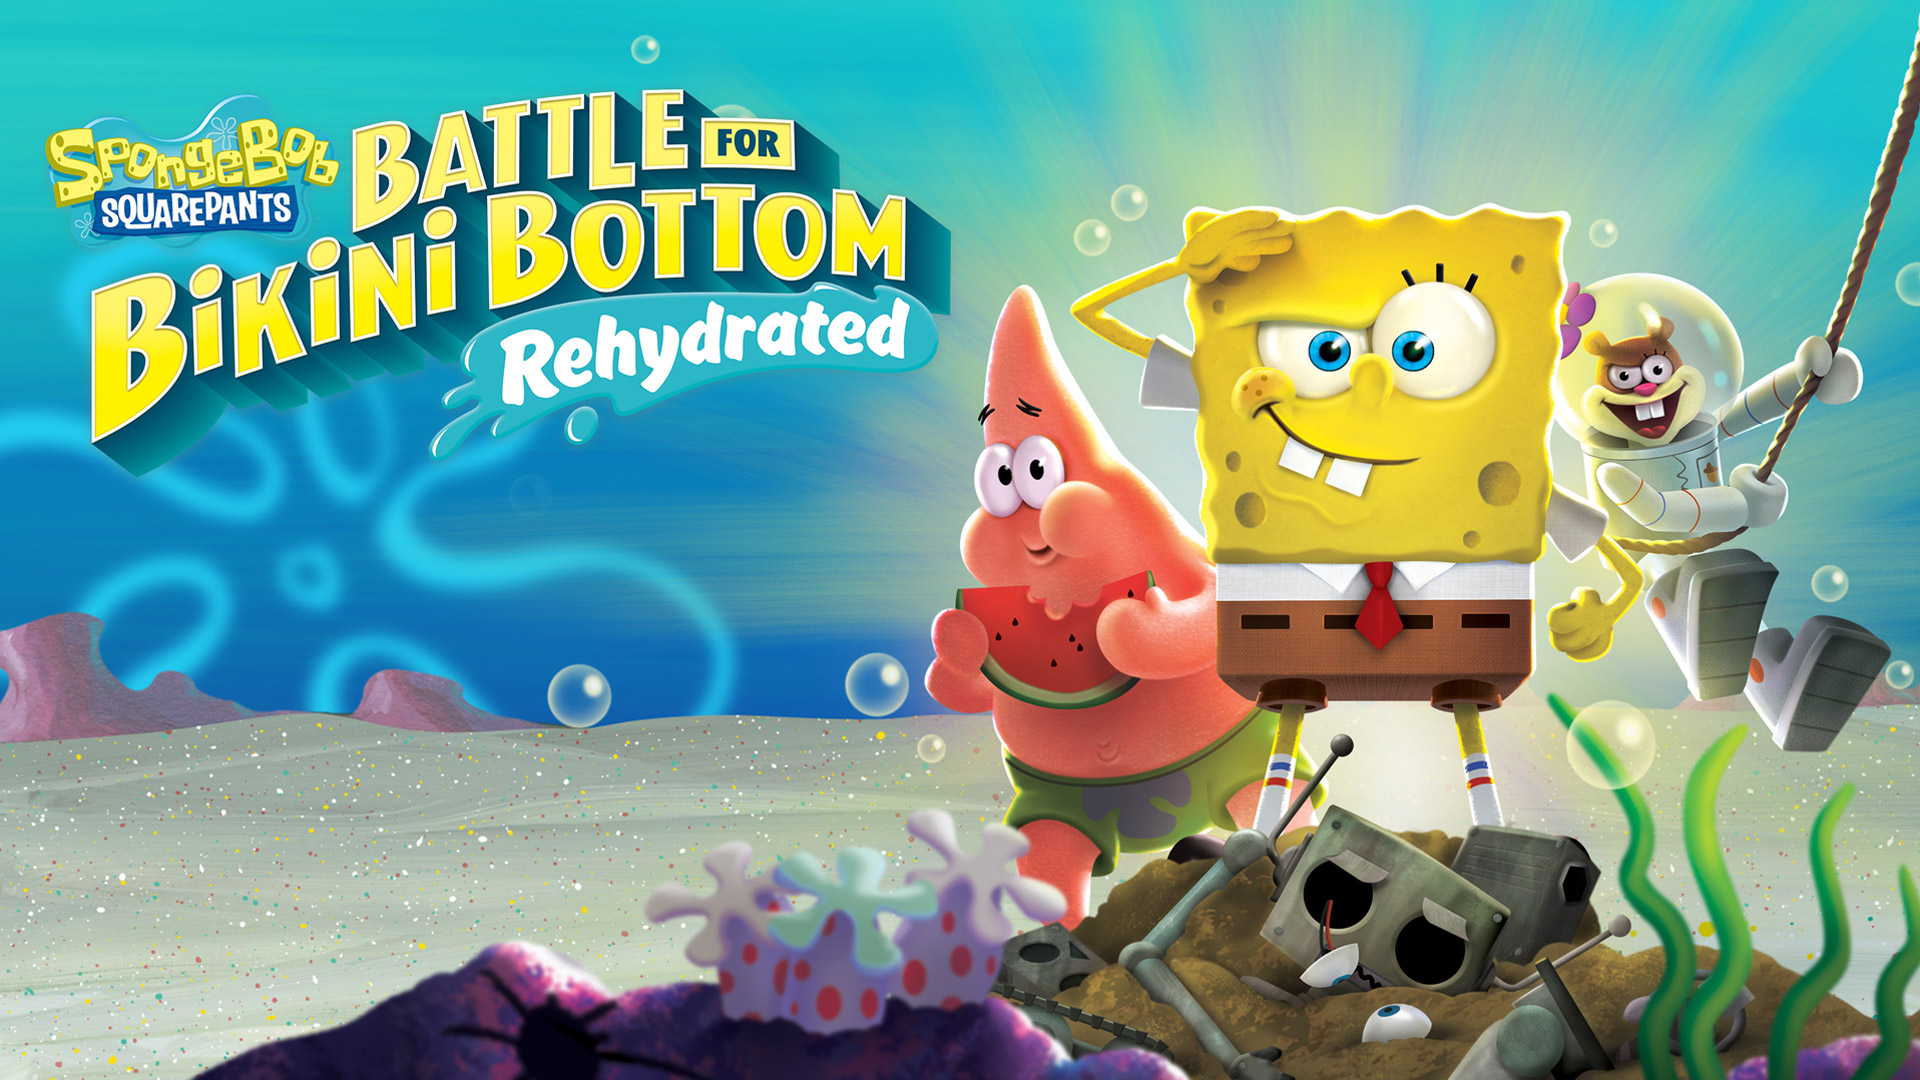 SpongeBob SquarePants: Battle for Bikini Bottom Wallpaper in 1920x1080